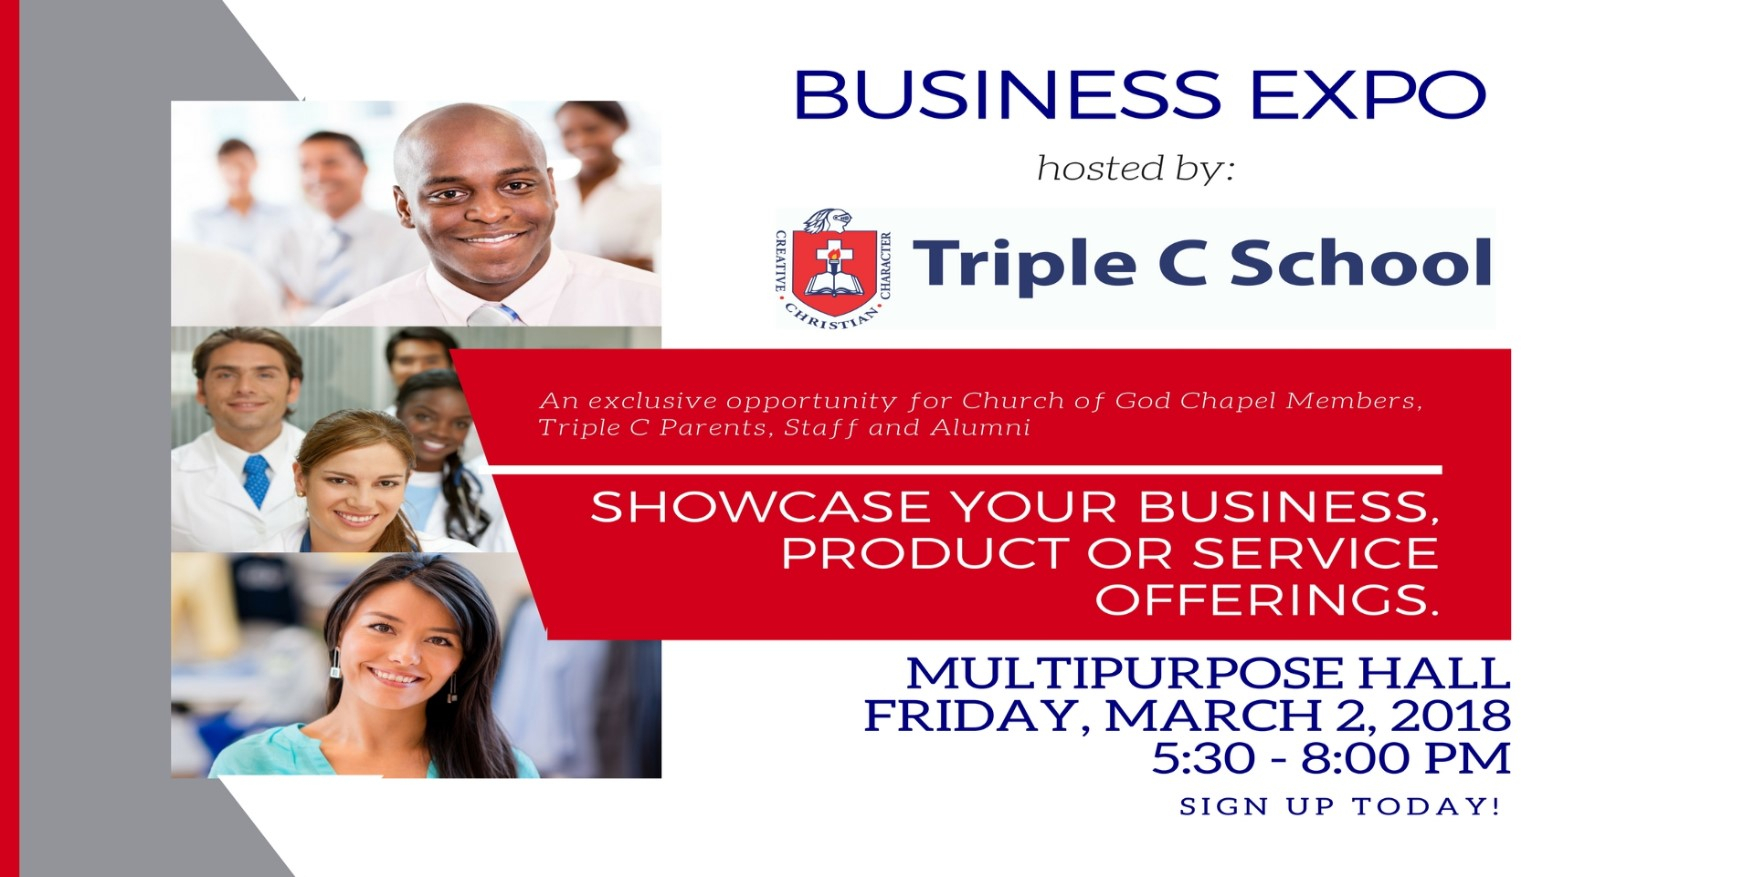 Mark Your Calendar  Business Expo 2018!  Triple C School regarding Triple C School Calendar